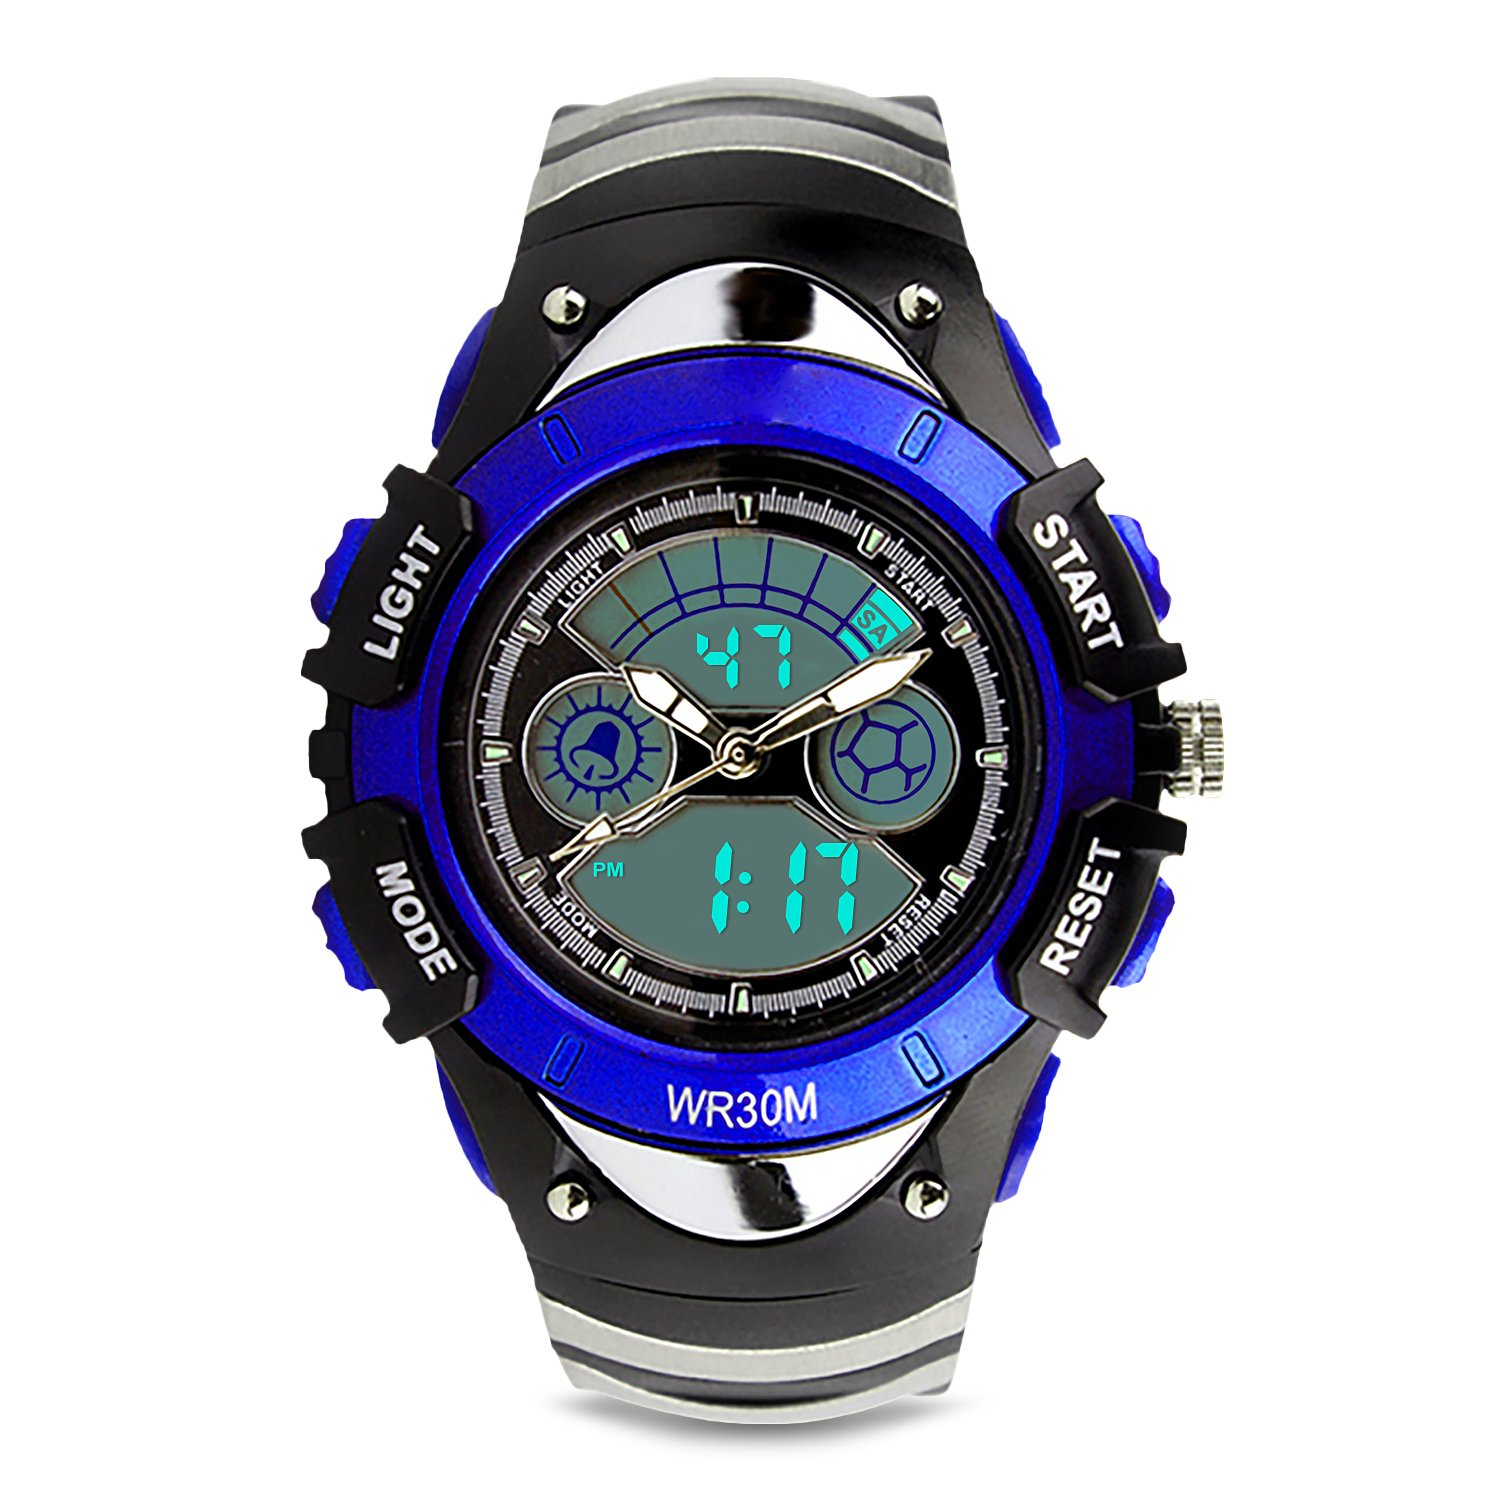 Aposon Kids Sports Digital Watch for Boys Girls Outdoor Analog Quartz Military Wrist Watches Waterproof LED Screen Dual Time Electronics Watch with Night Light Alarm Chronograph Stopwatch - Blue